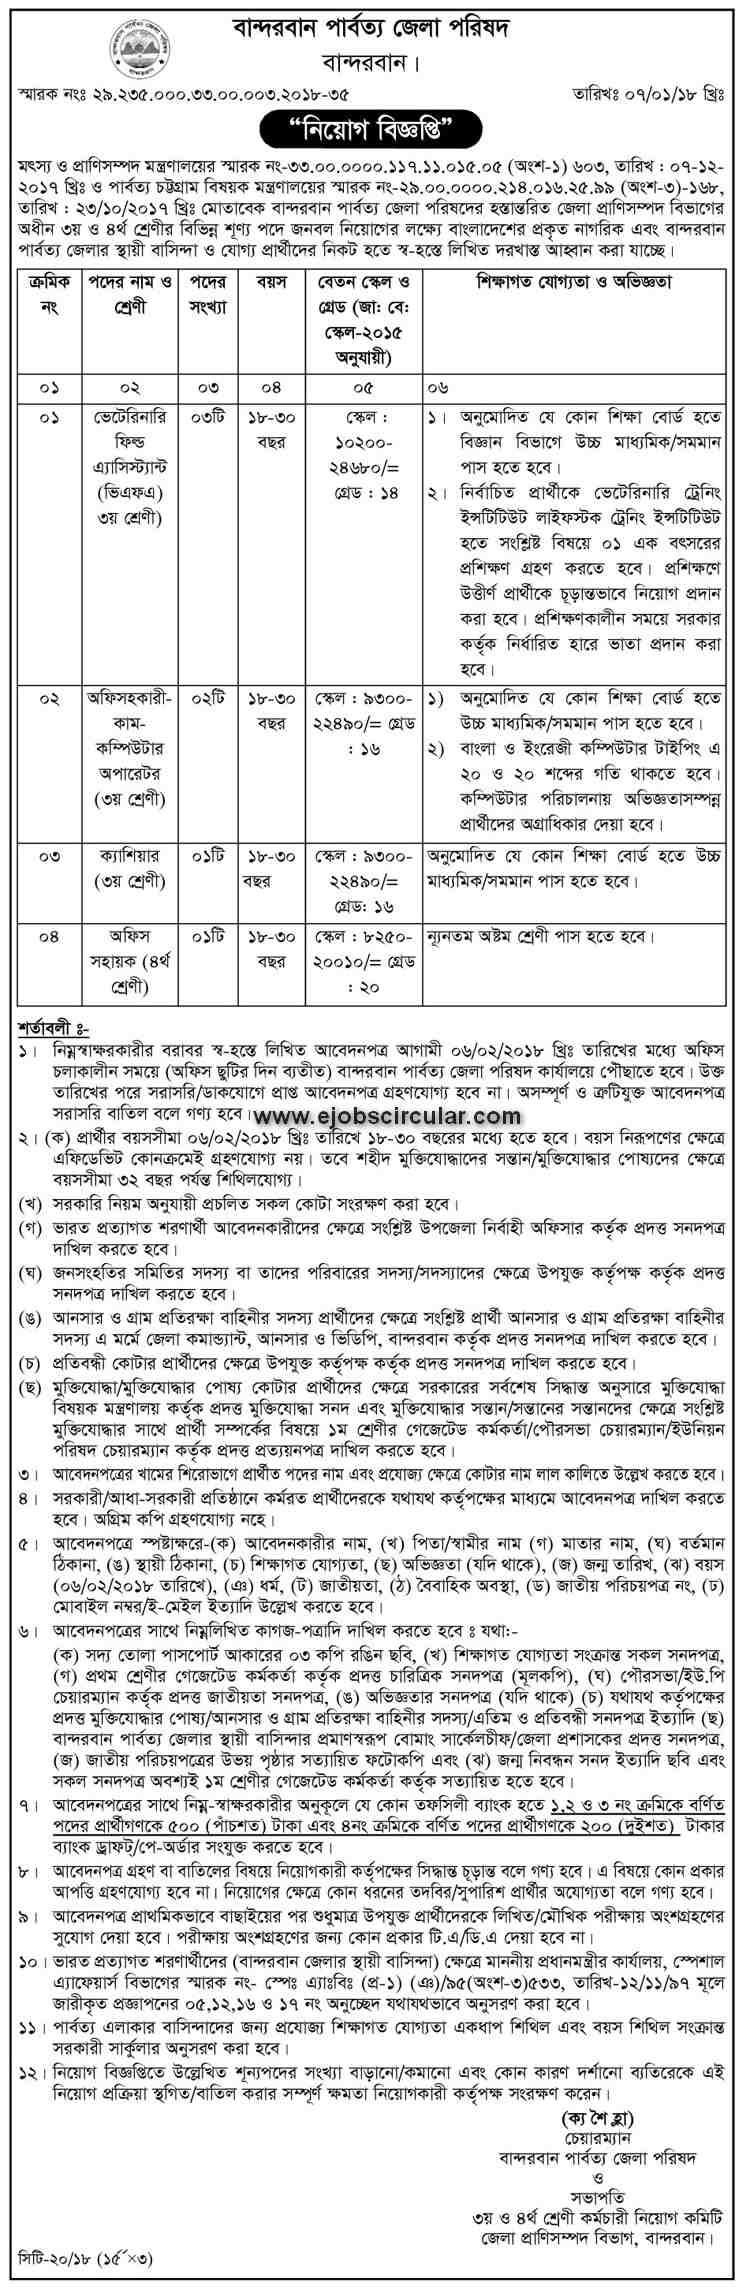 Ministry of Fisheries and Livestock Job Circular 2018